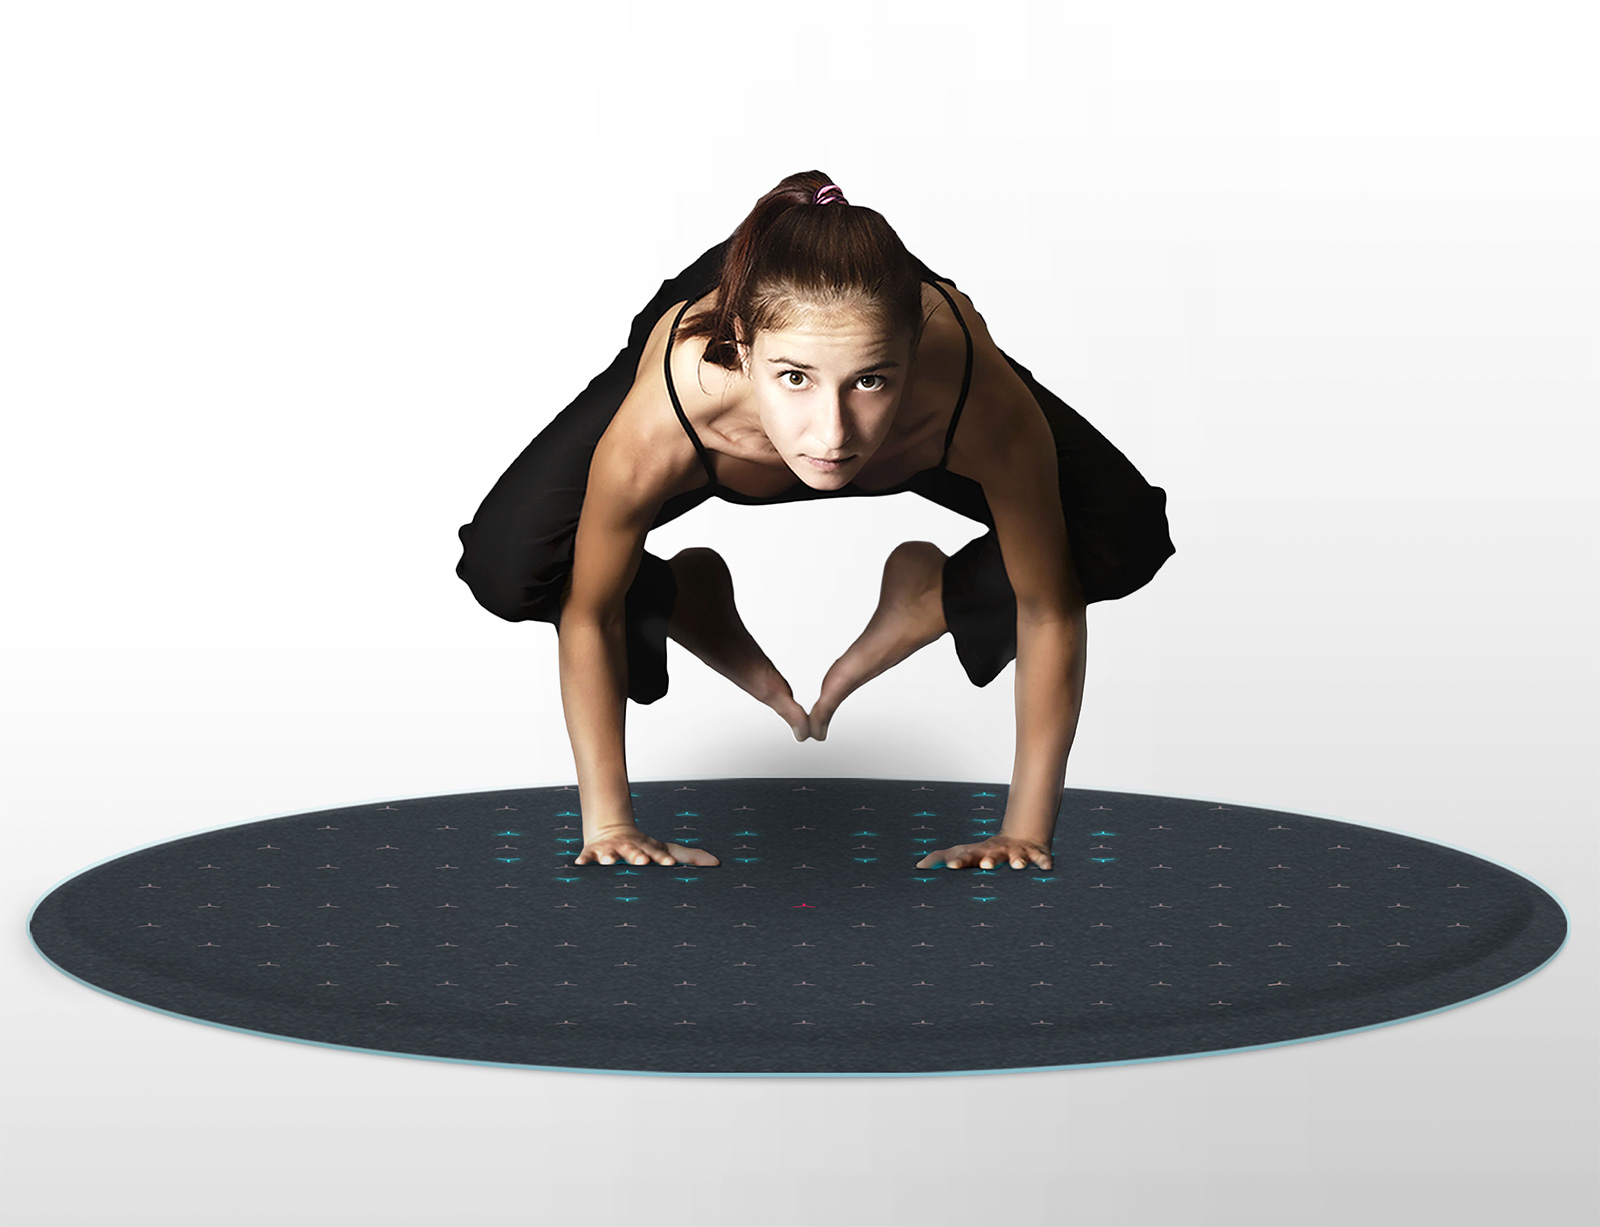 TERA: An Interactive Fitness Yoga Mat That Poses As a Rug